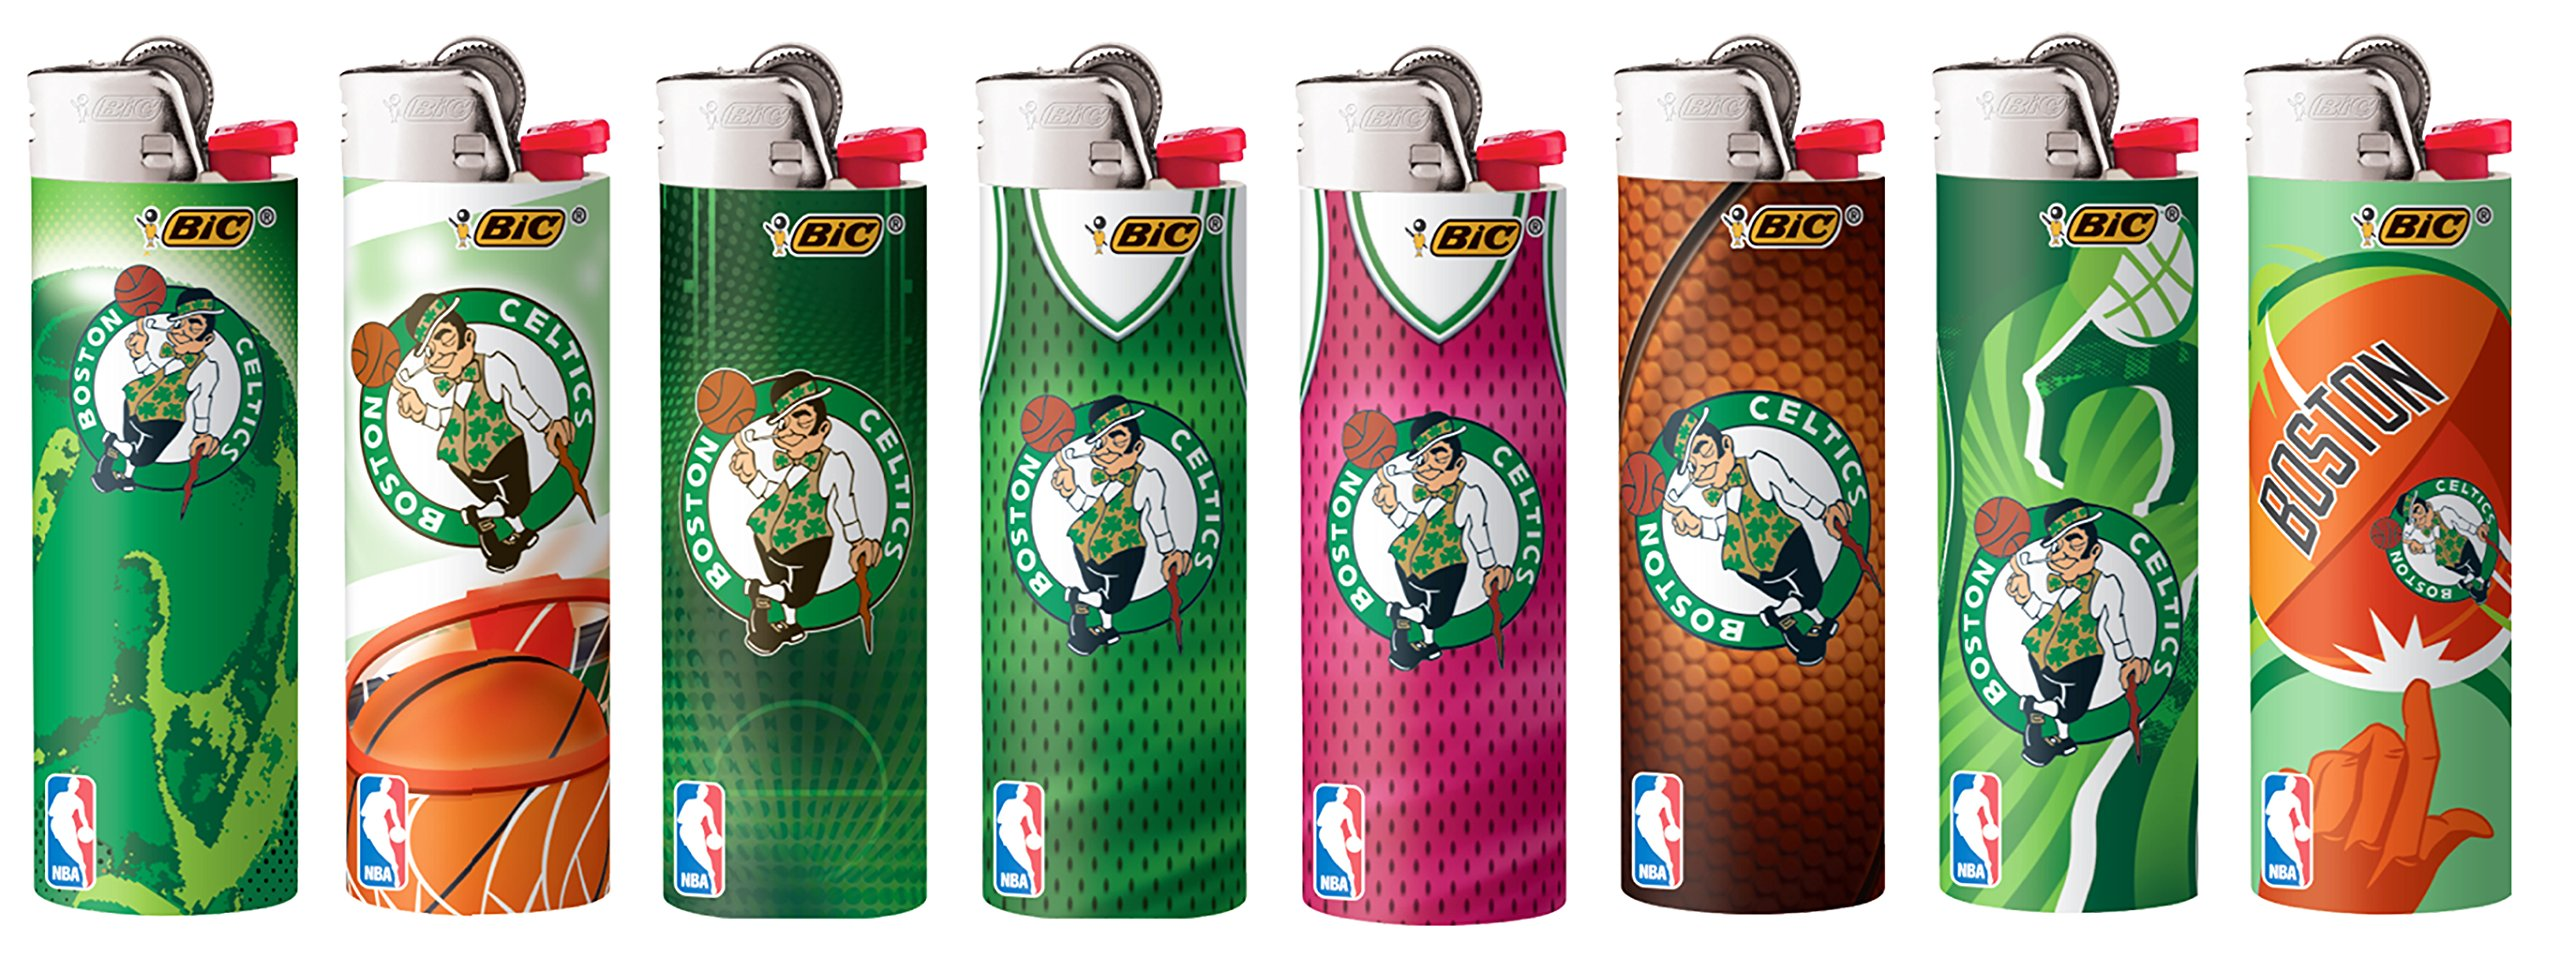 Bic Boston Celtics Lighters Set of 8 NBA Officially Licensed Bic Cigarette Lighters